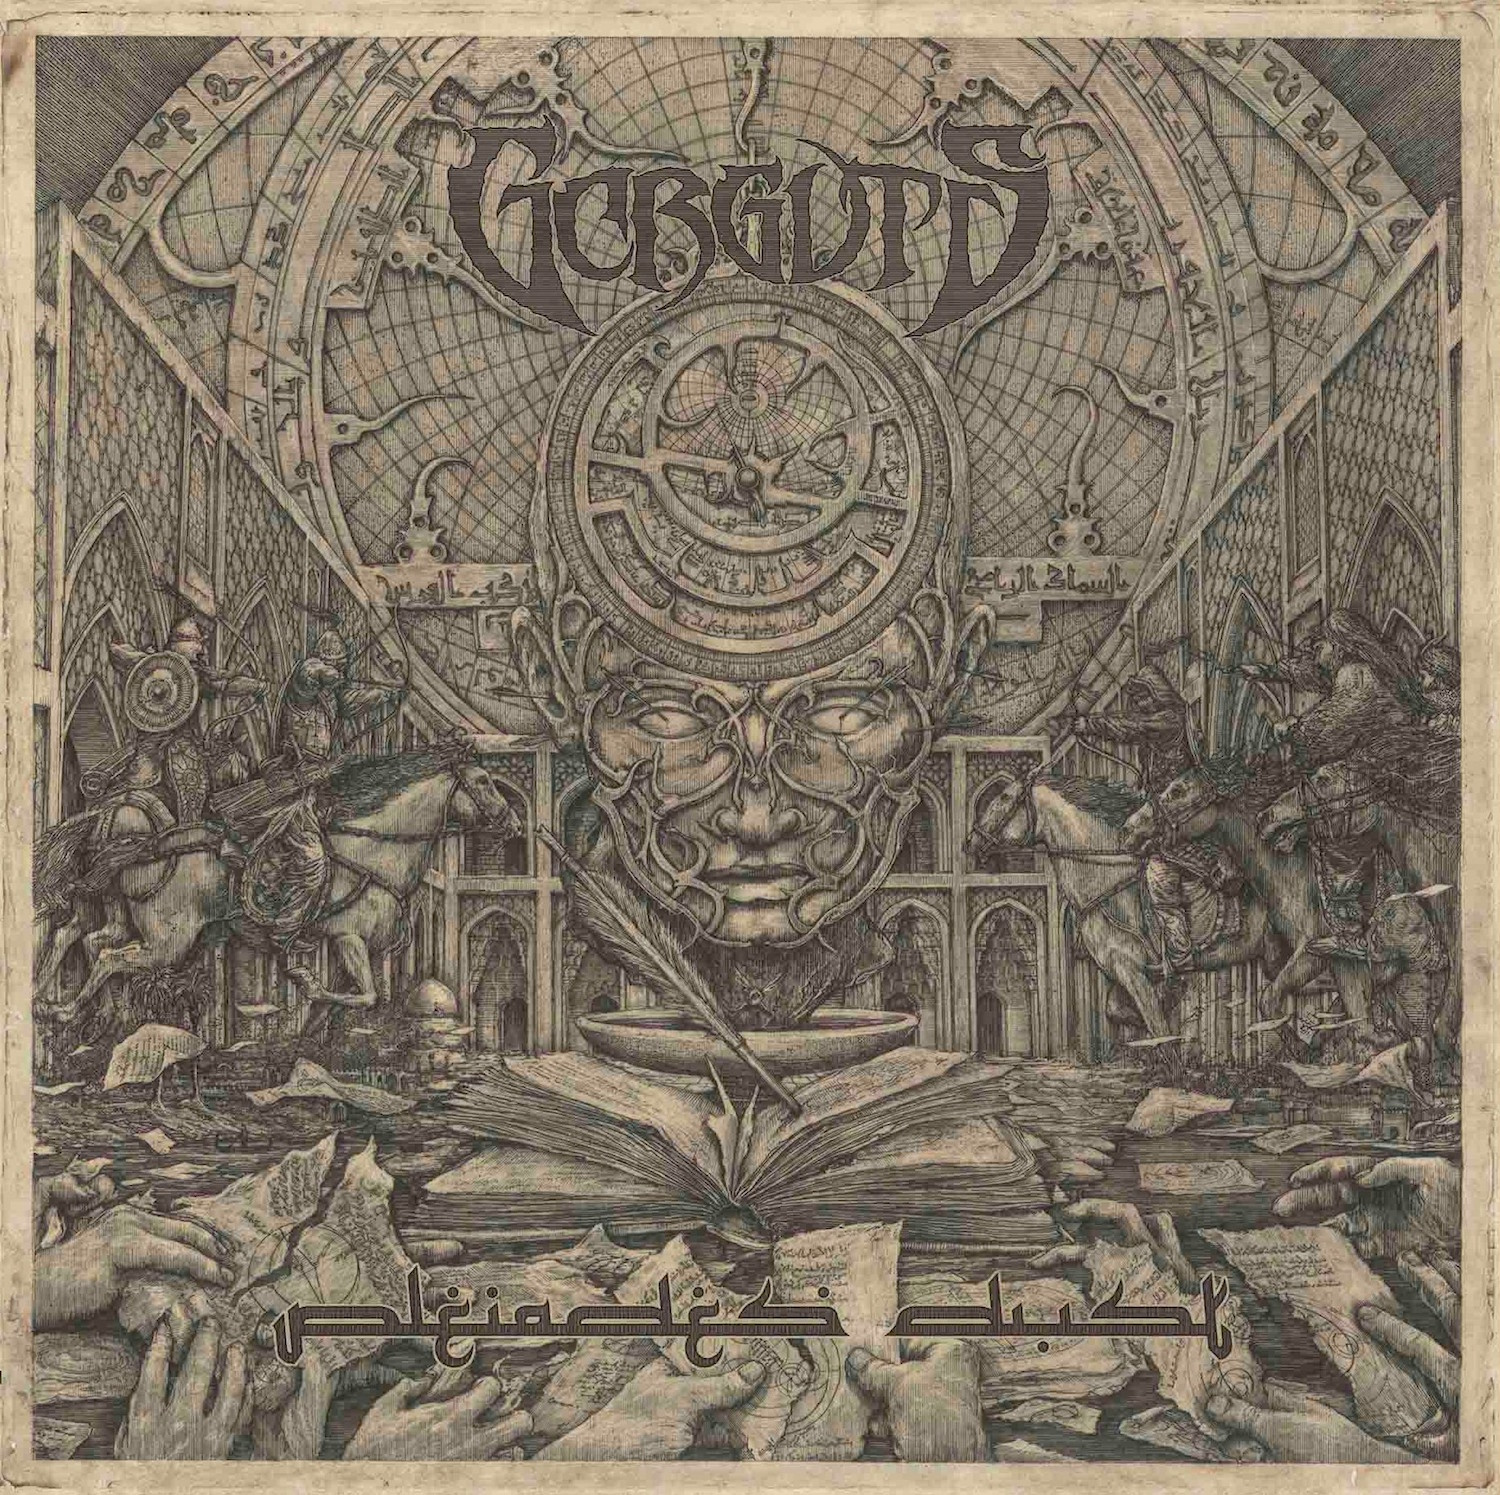 gorguts_-_pleiades_dust_-_artwork